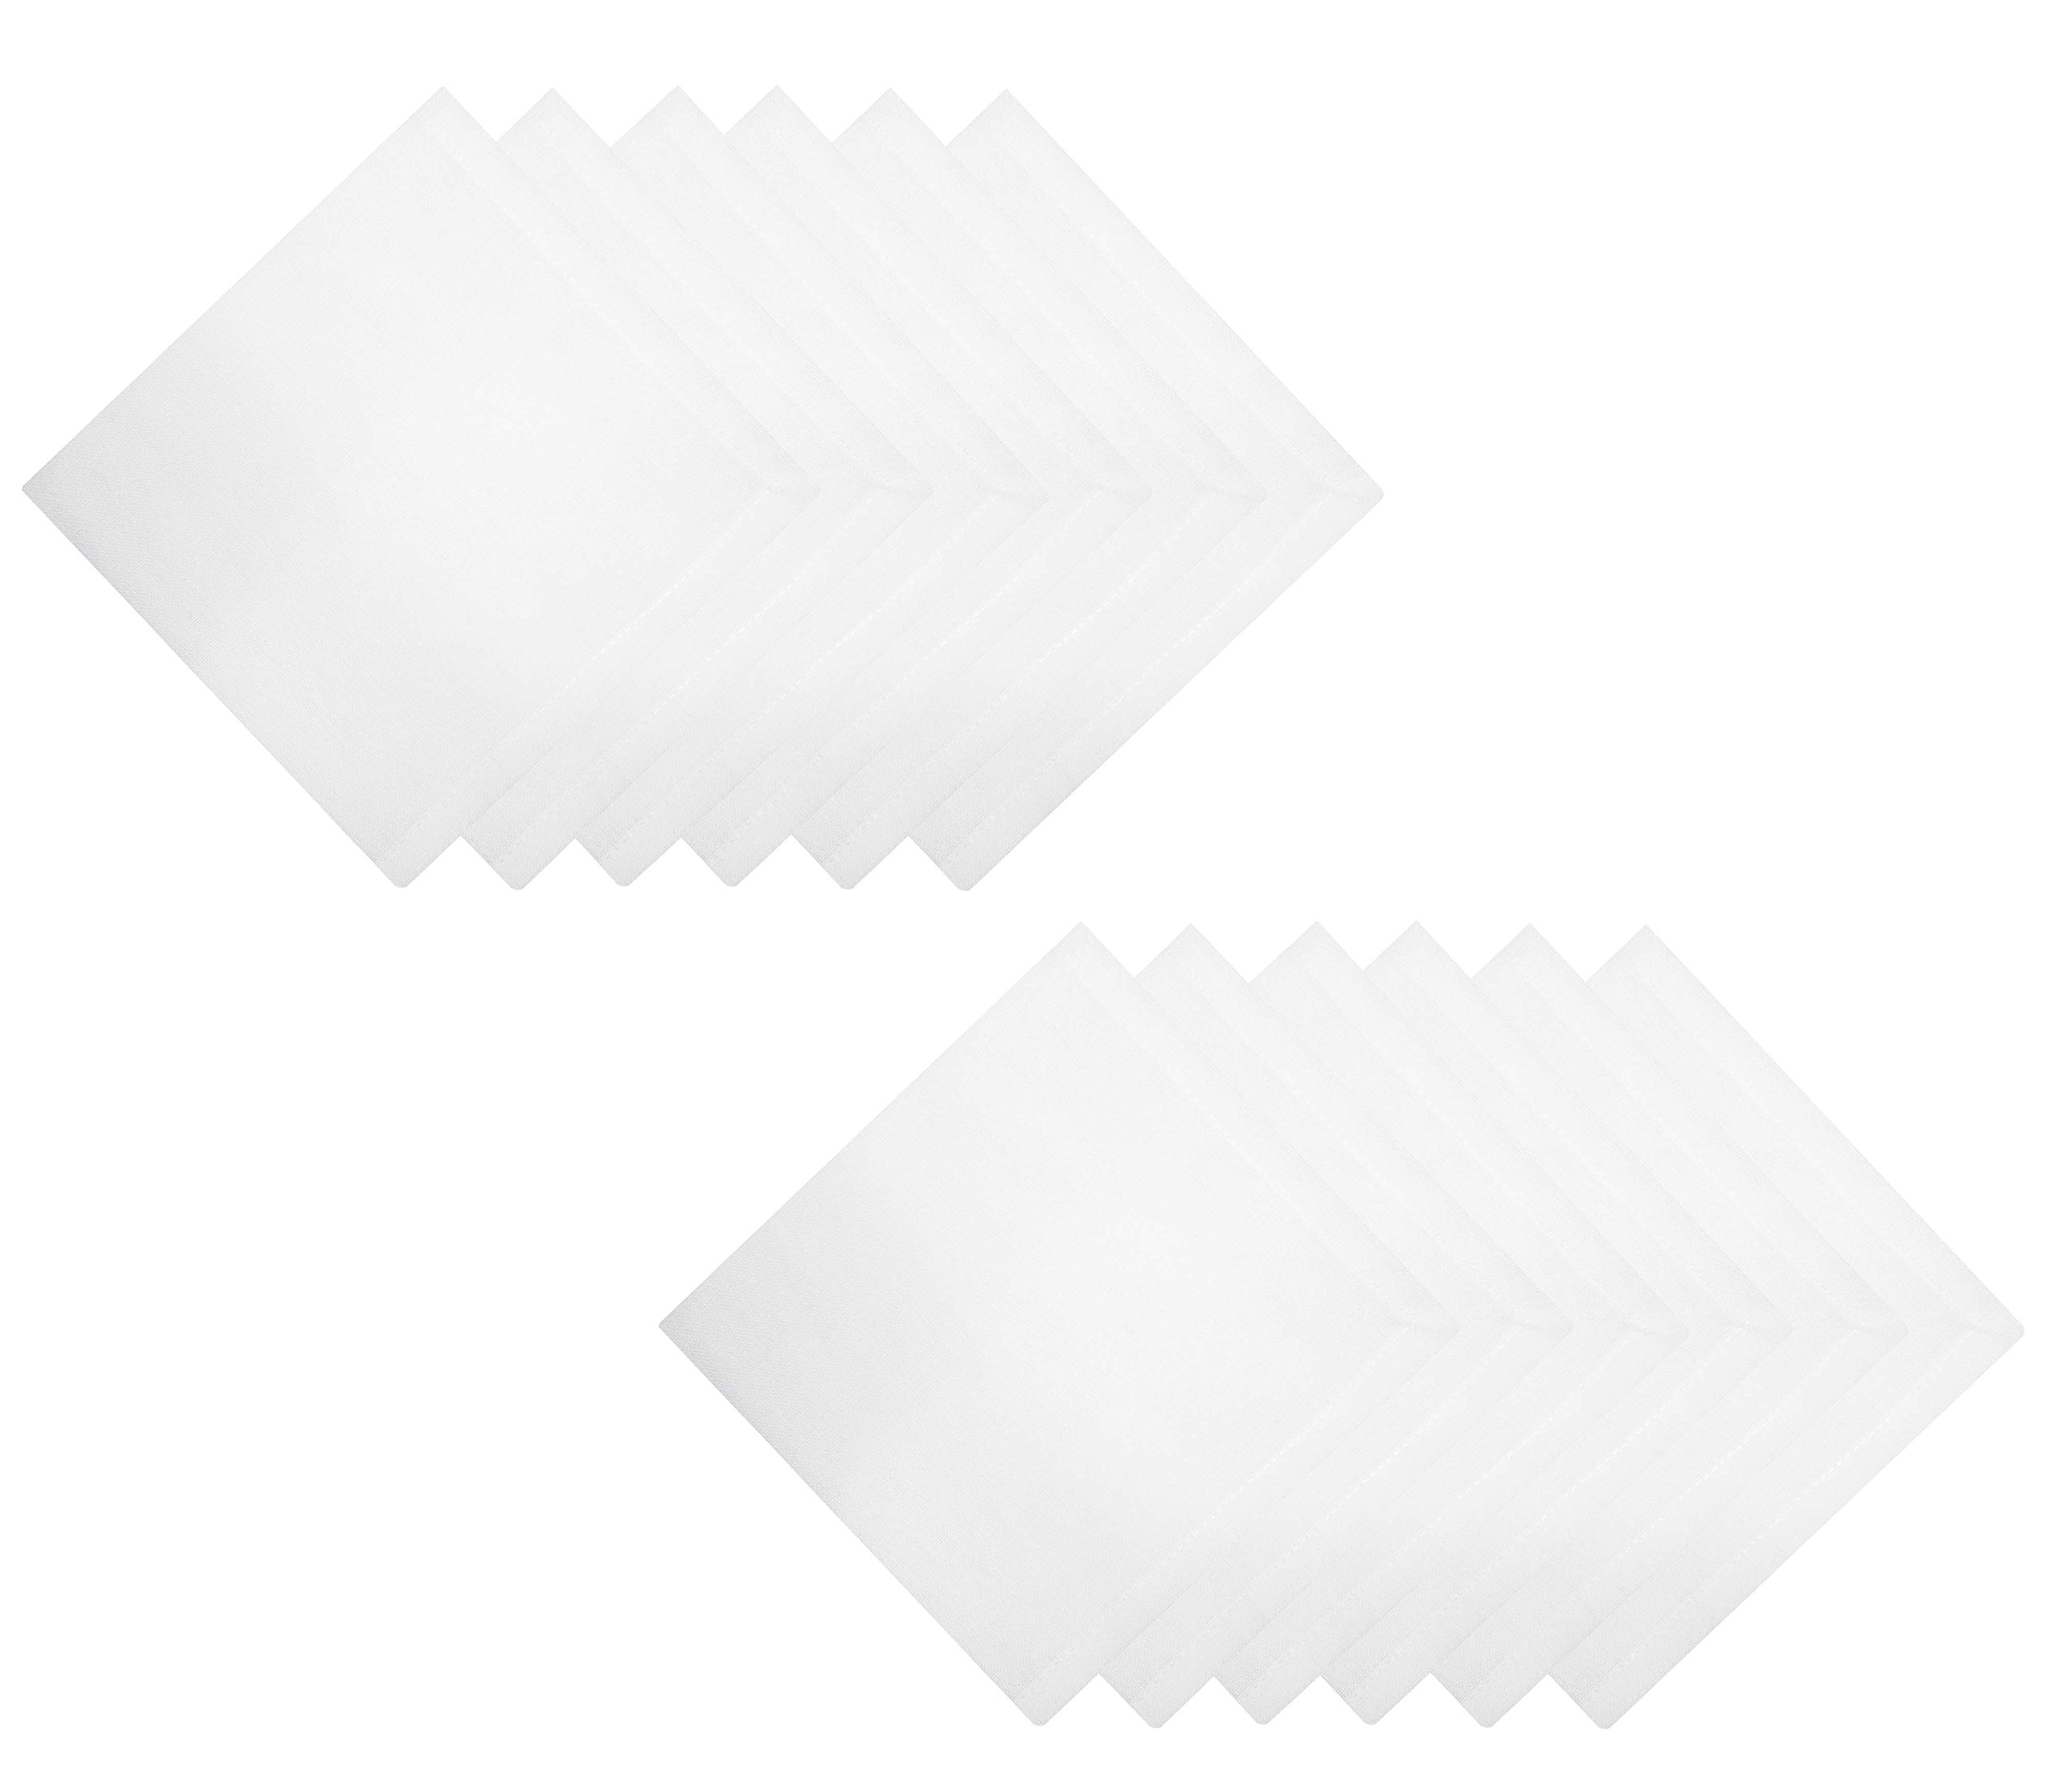 Tiny Break Cloth Napkins 17 x 17 inch -100% Cotton - Soft and Comfortable - Ideal for Events and Regular Home Use - White -12 Pack